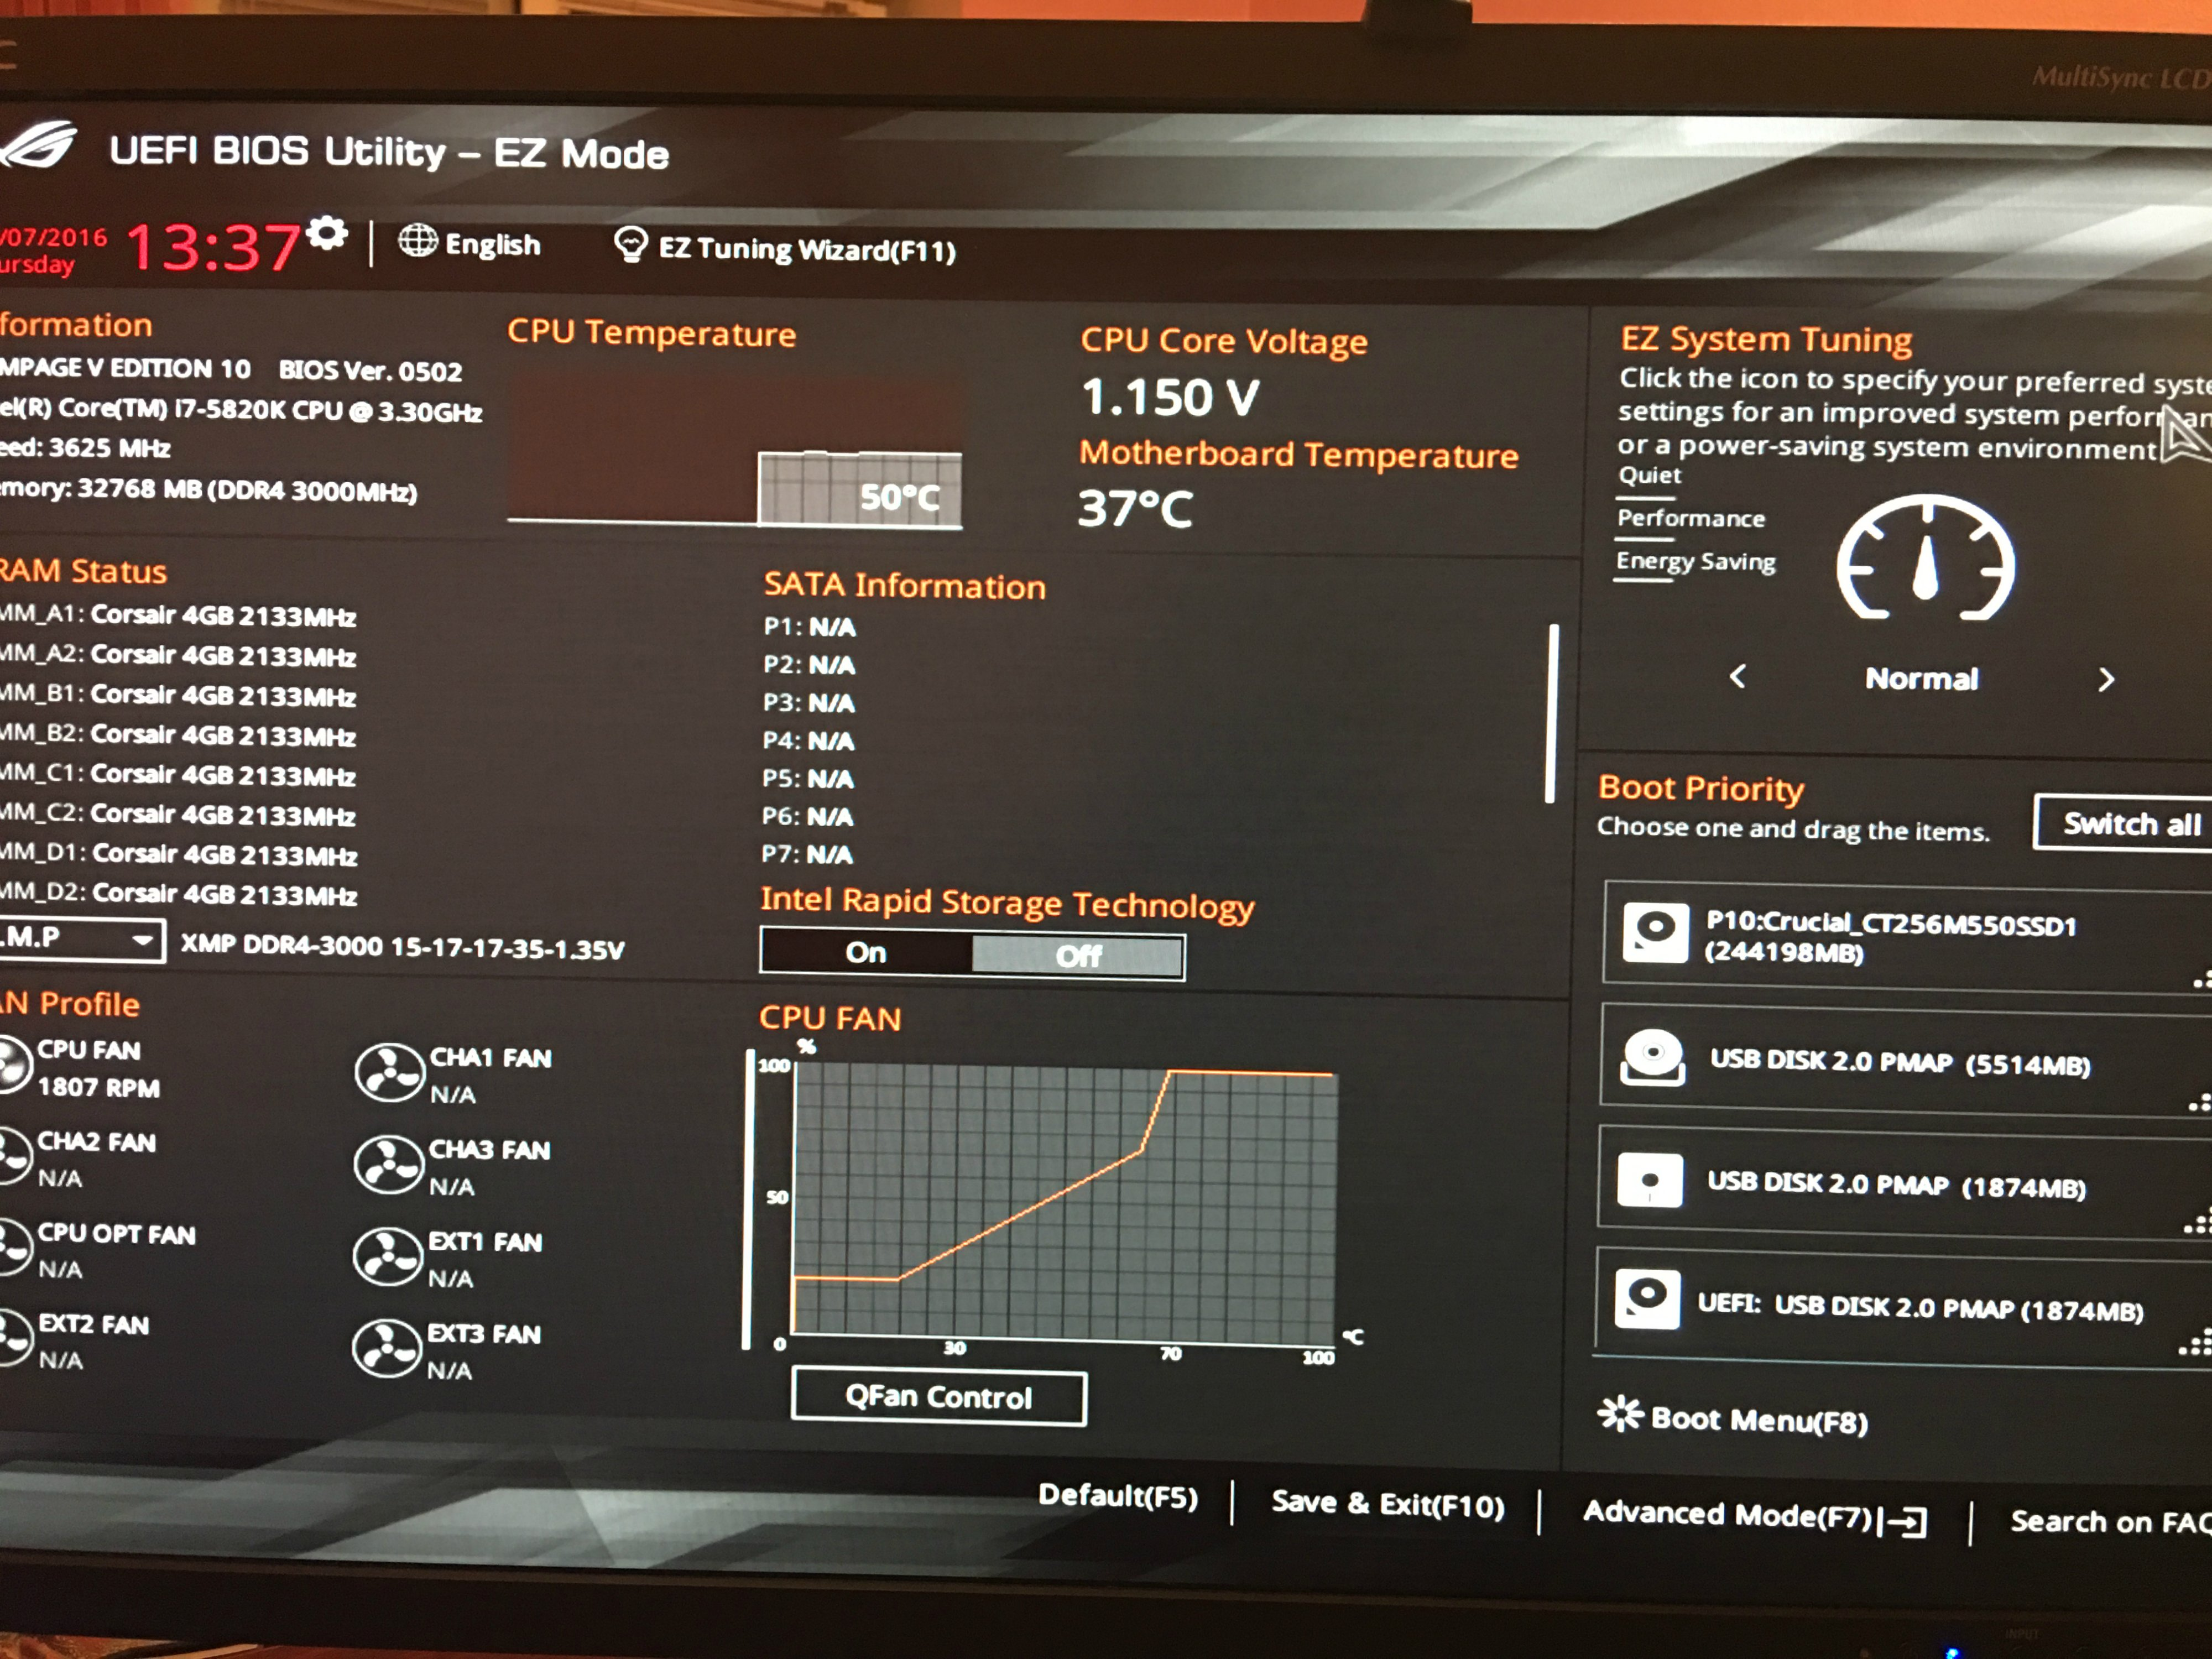 PCPER] ROG ASUS RAMPAGE V Edition 10 - Page 46 - Overclock net - An